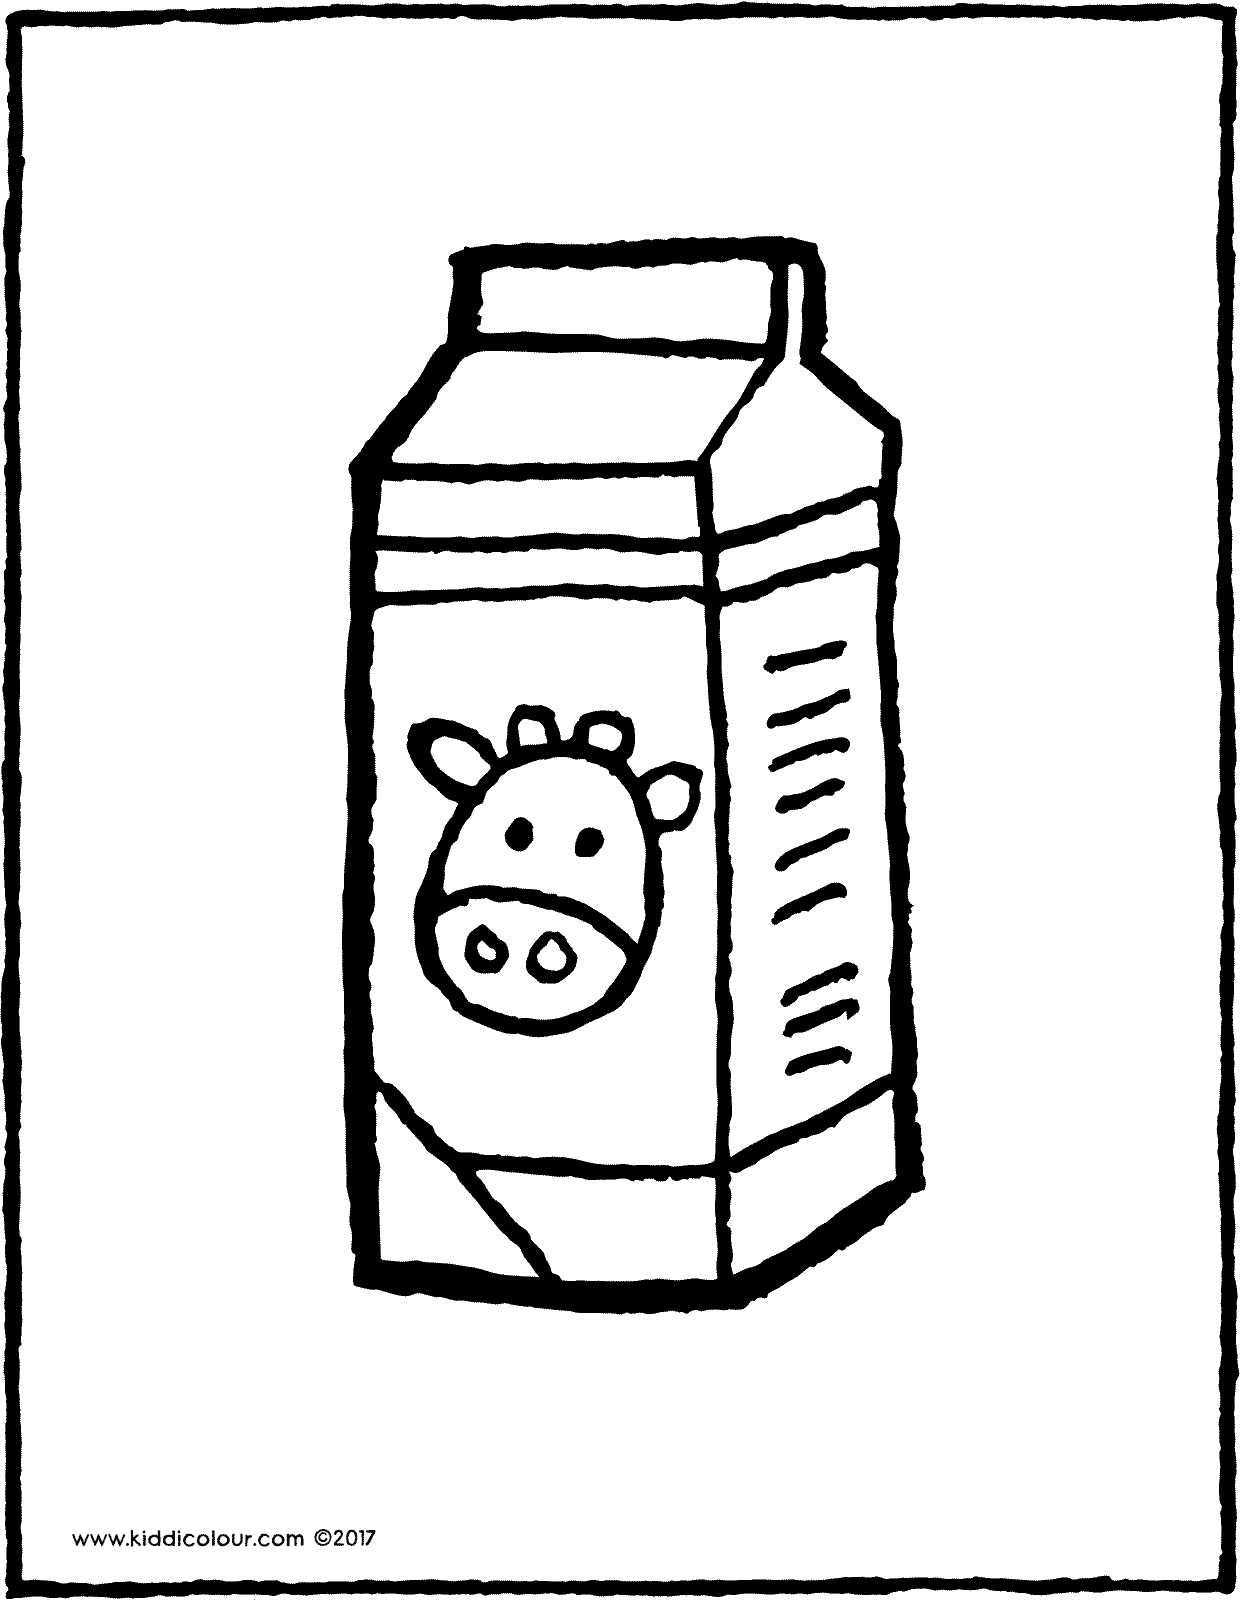 milk carton coloring pages - photo#7